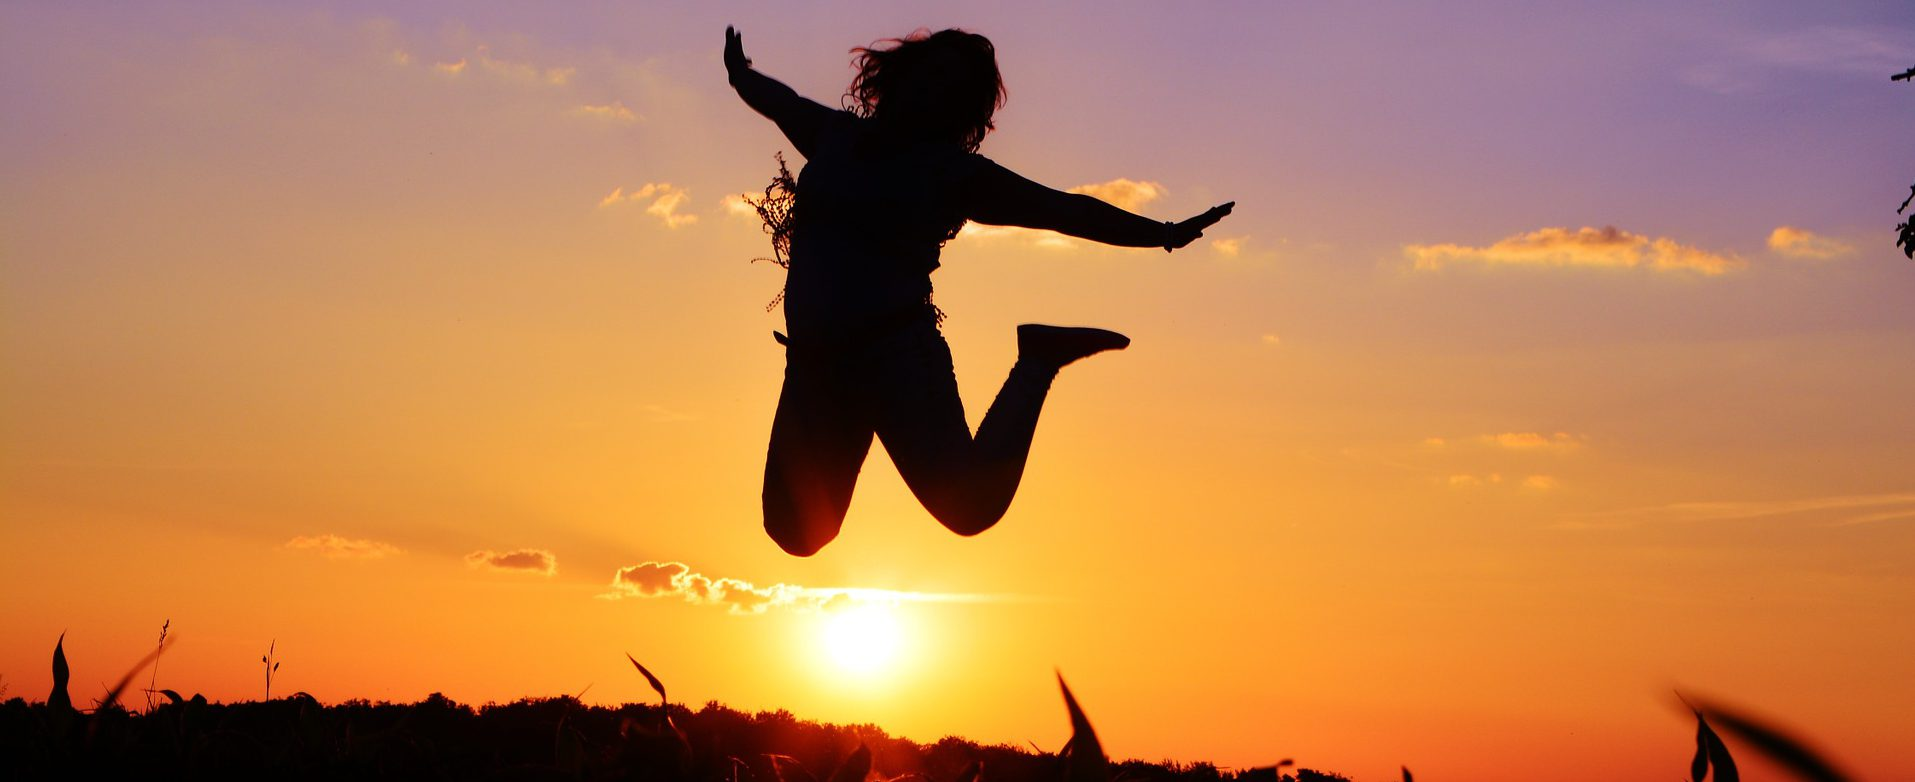 Person leaping in front of sun